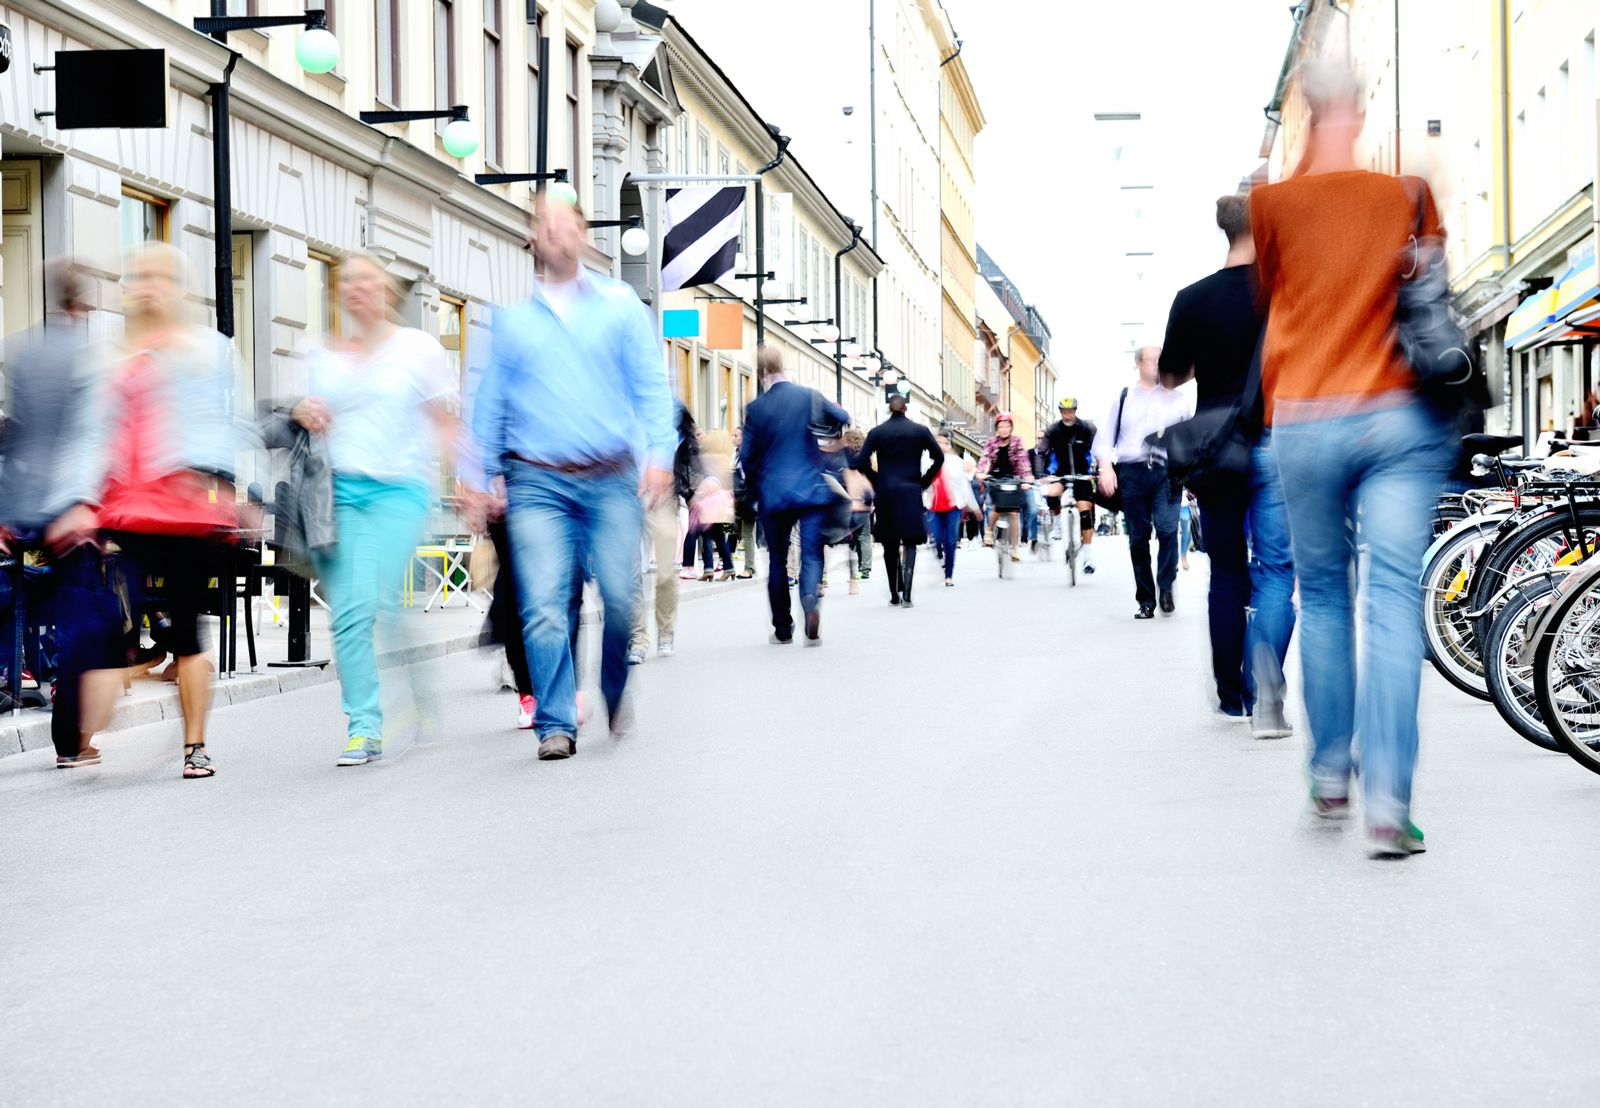 The Hart Law Firm Pedestrian Safety